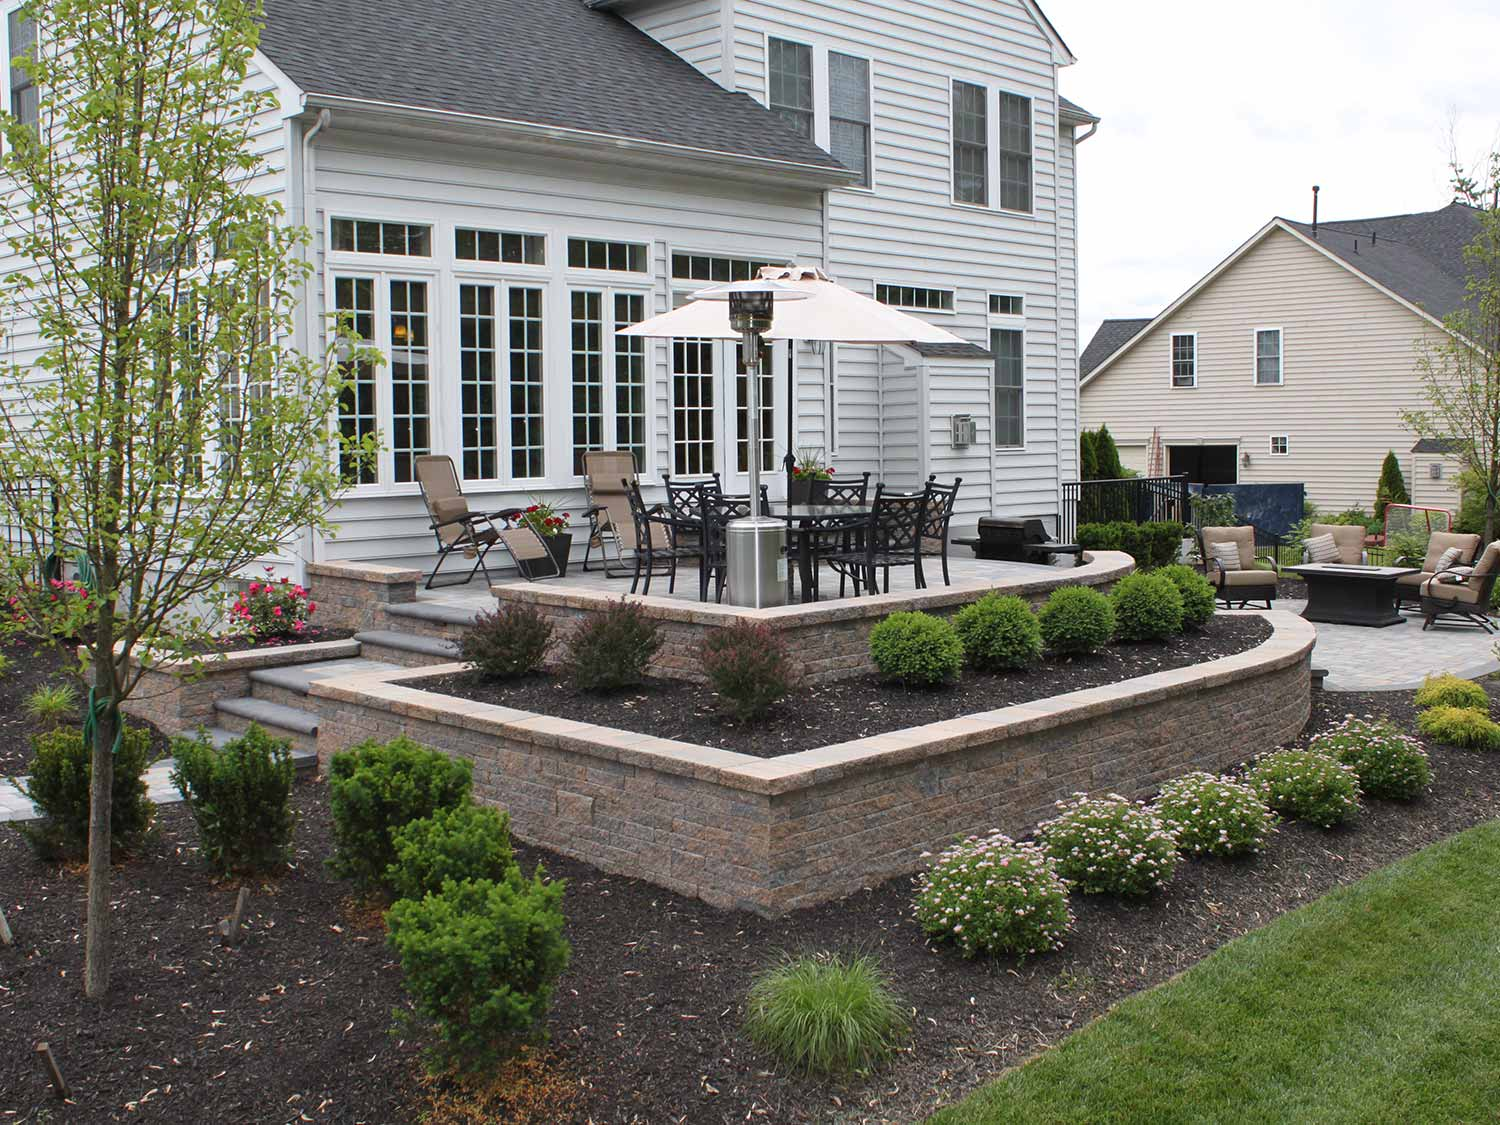 Raised Patio Design - R & R Caddick Design